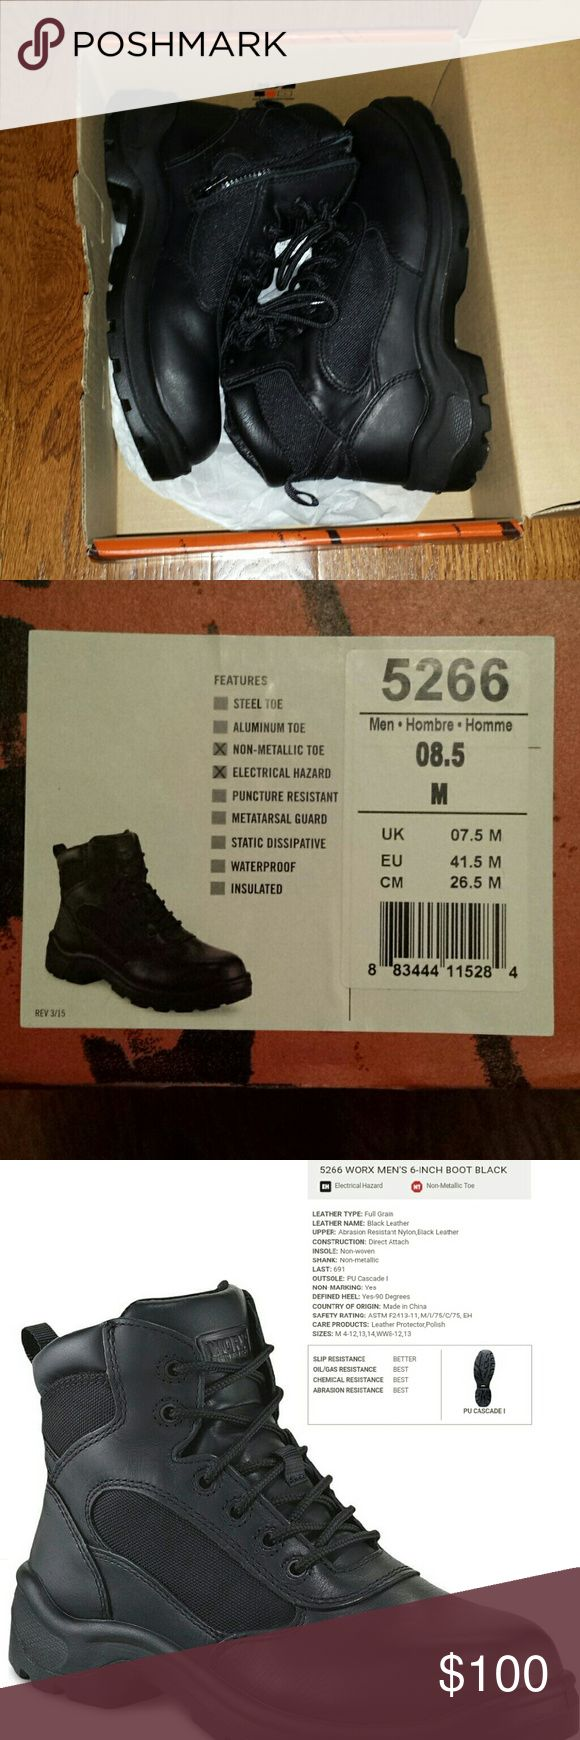 Men's Worx Boots by Red Wing Brand new in box, size 8.5 men's, purchased for firefighter job but unable to wear this brand at new department. Non metallic toe and features electrical hazard. Style number 5266. Red Wing Shoes Shoes Boots